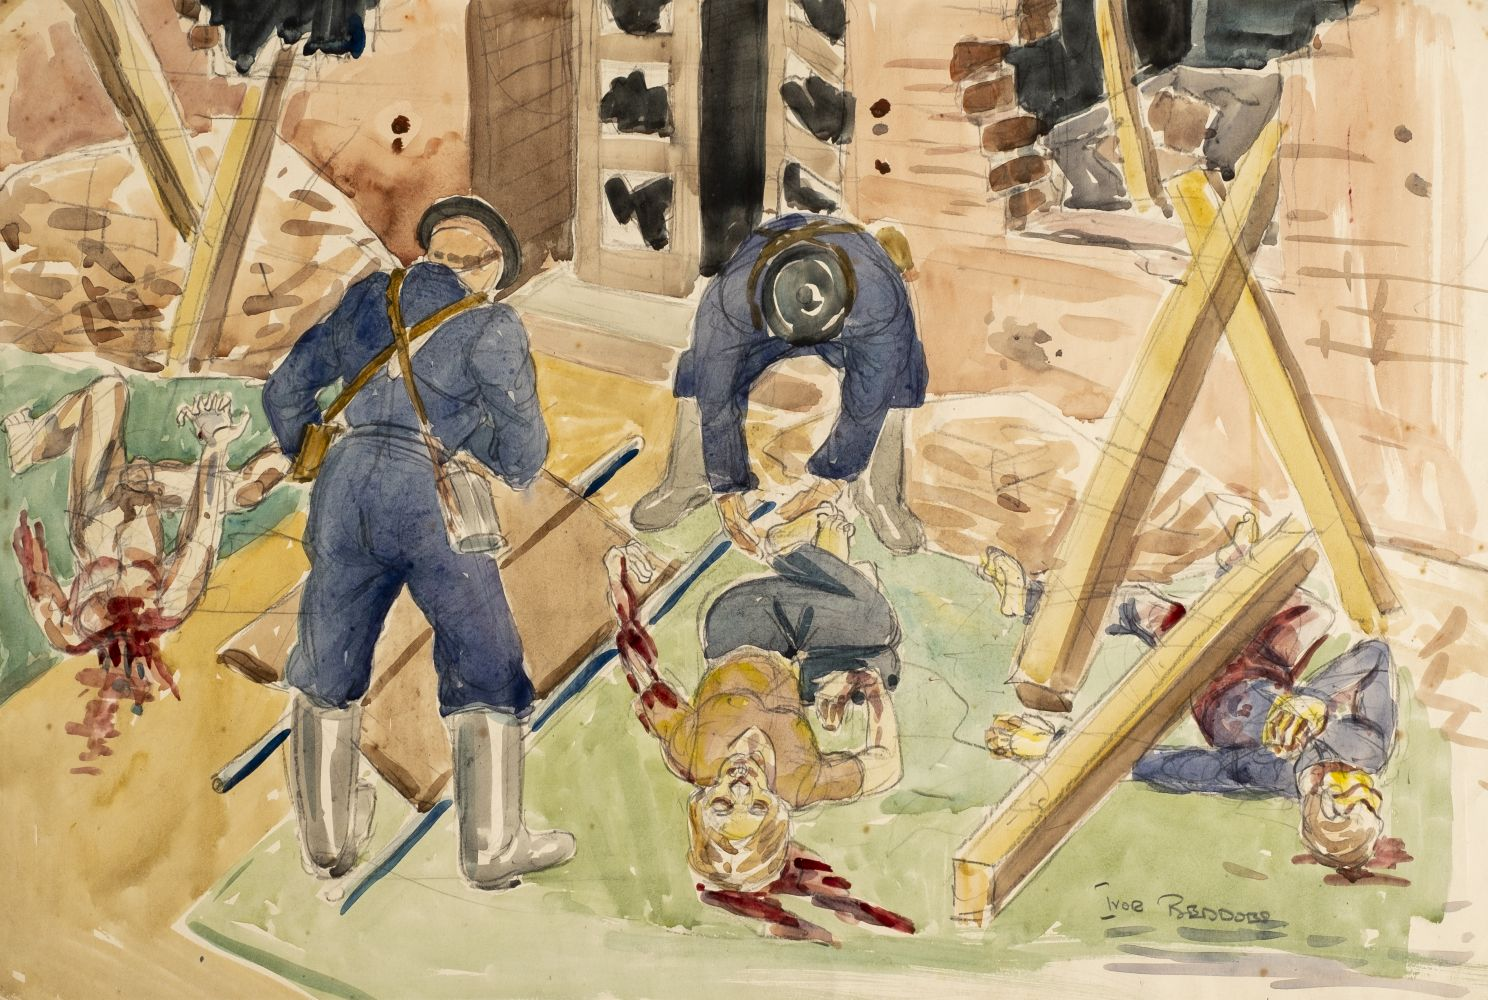 Lot 279 - * Beddoes (Ivor, 1909-1981). A group of watercolour & pencil drawings of scenes from the Lond